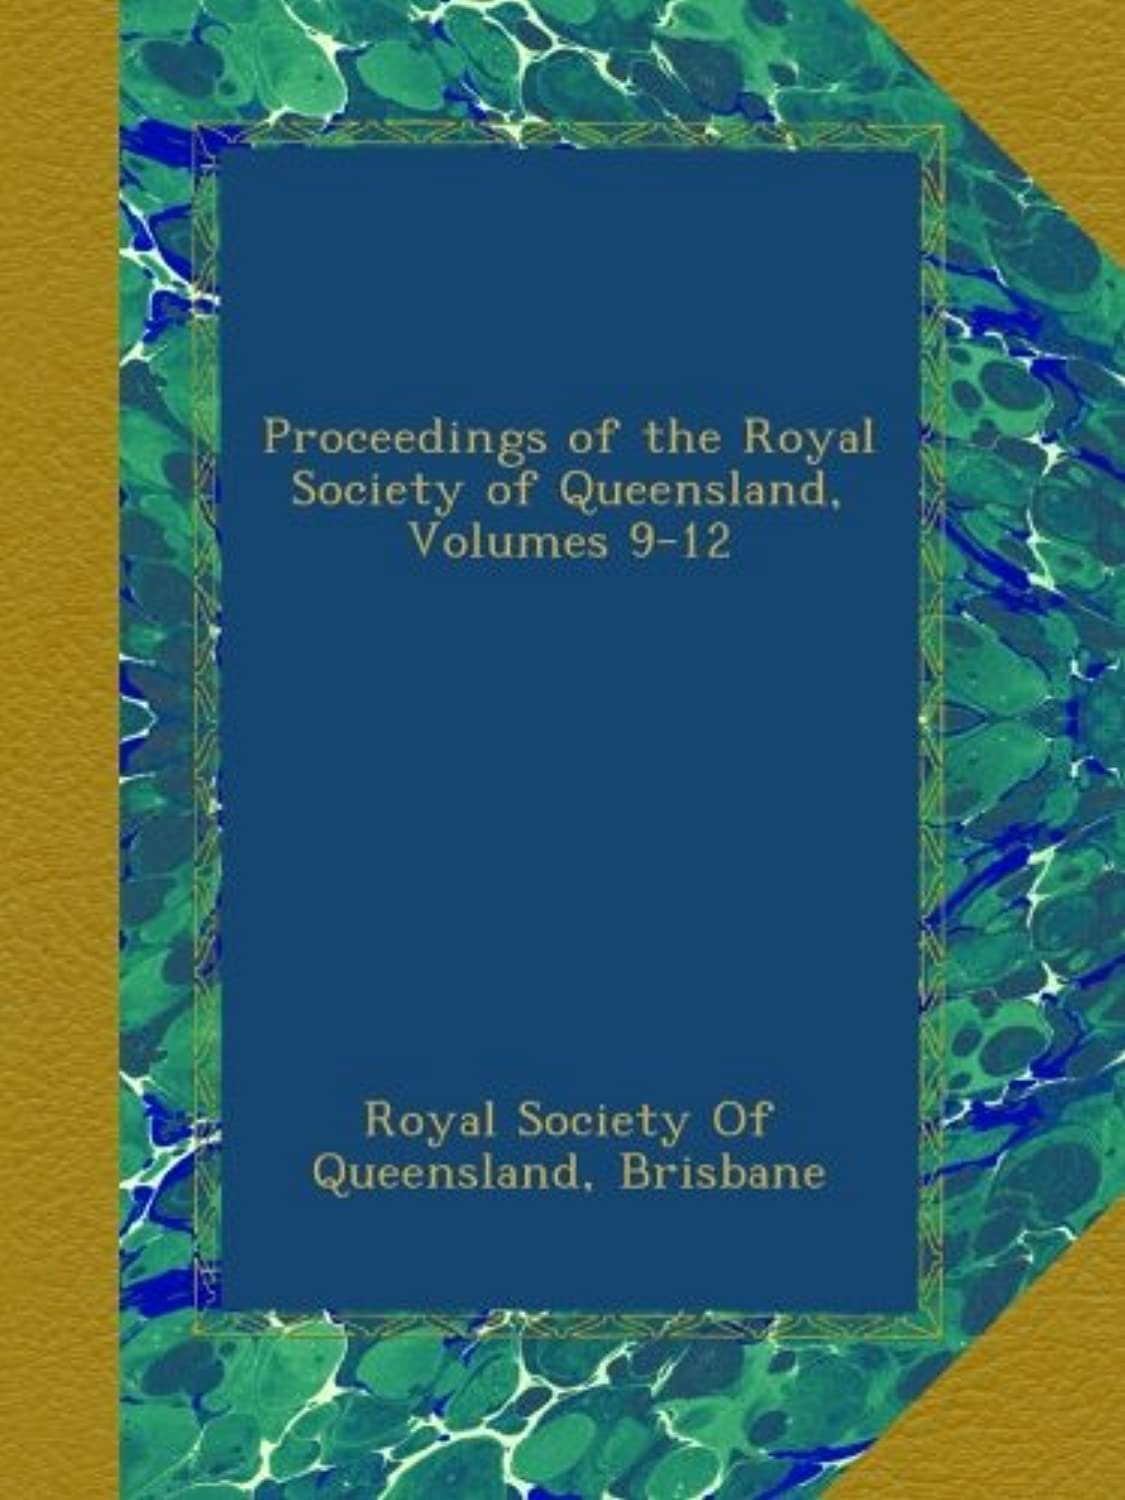 Proceedings of the Royal Society of Queensland, Volumes 9-12